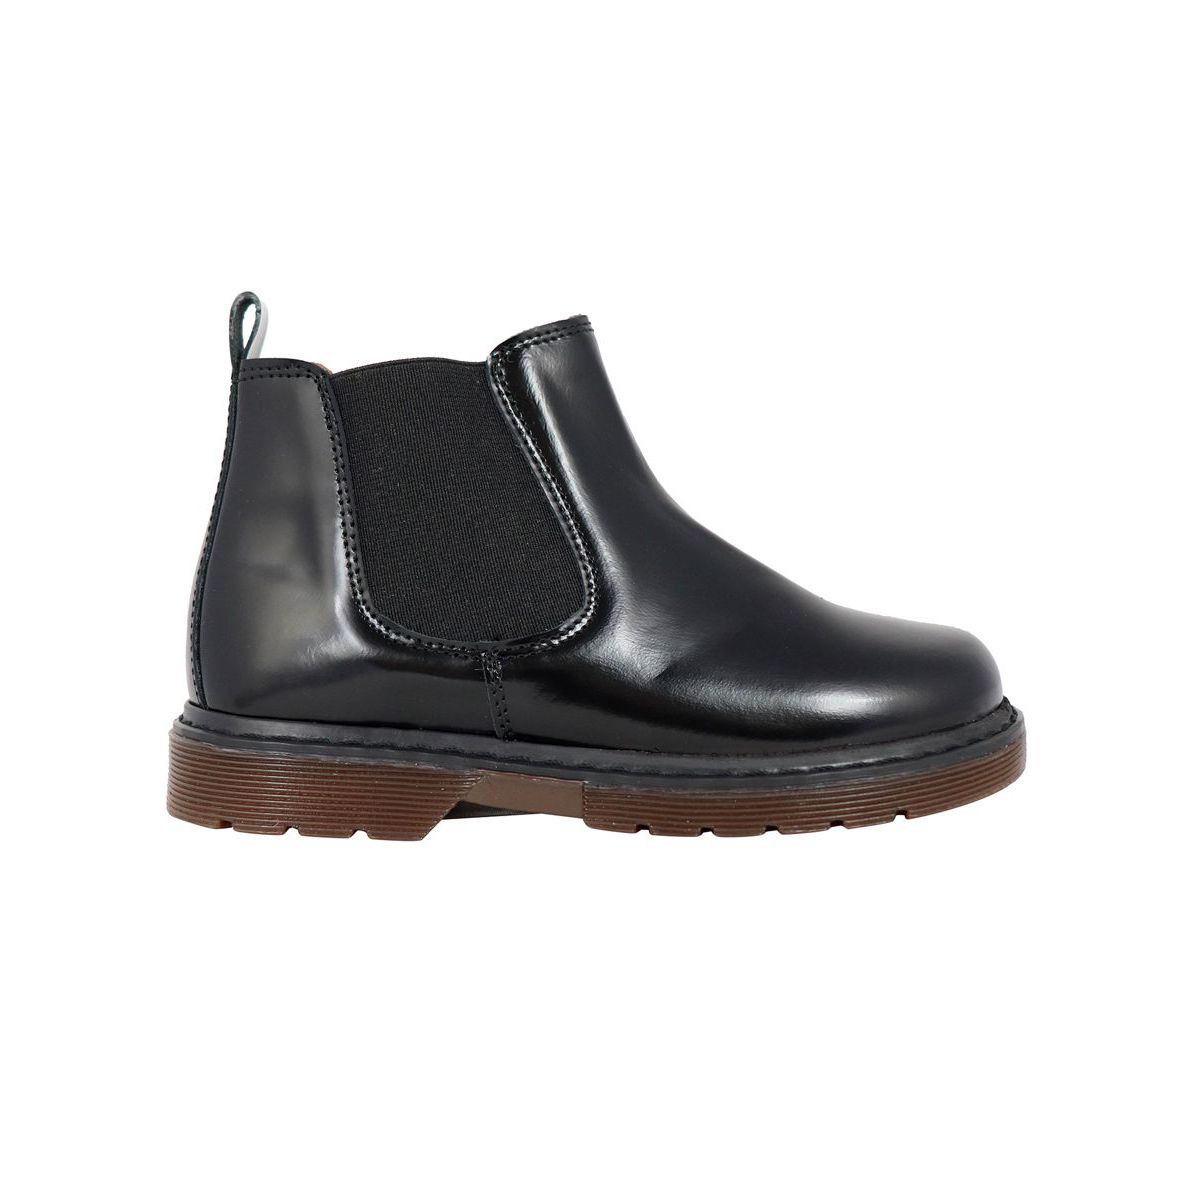 Chelsea boot in shiny leather Black Clarys